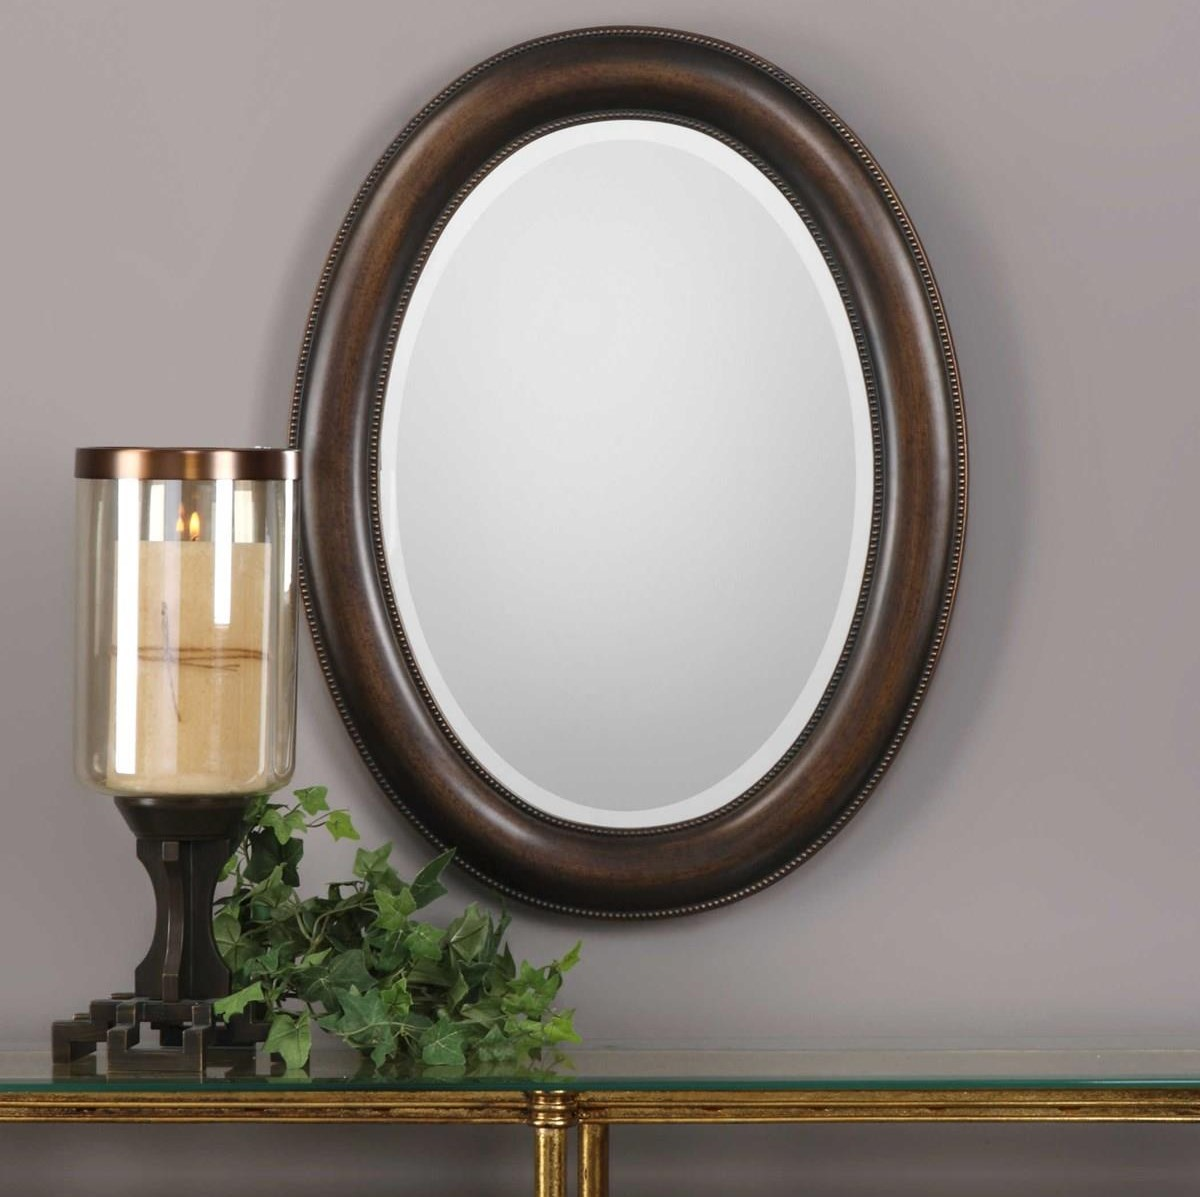 Mirrors CHLOE WALL MIRROR by Unique at Walker's Furniture